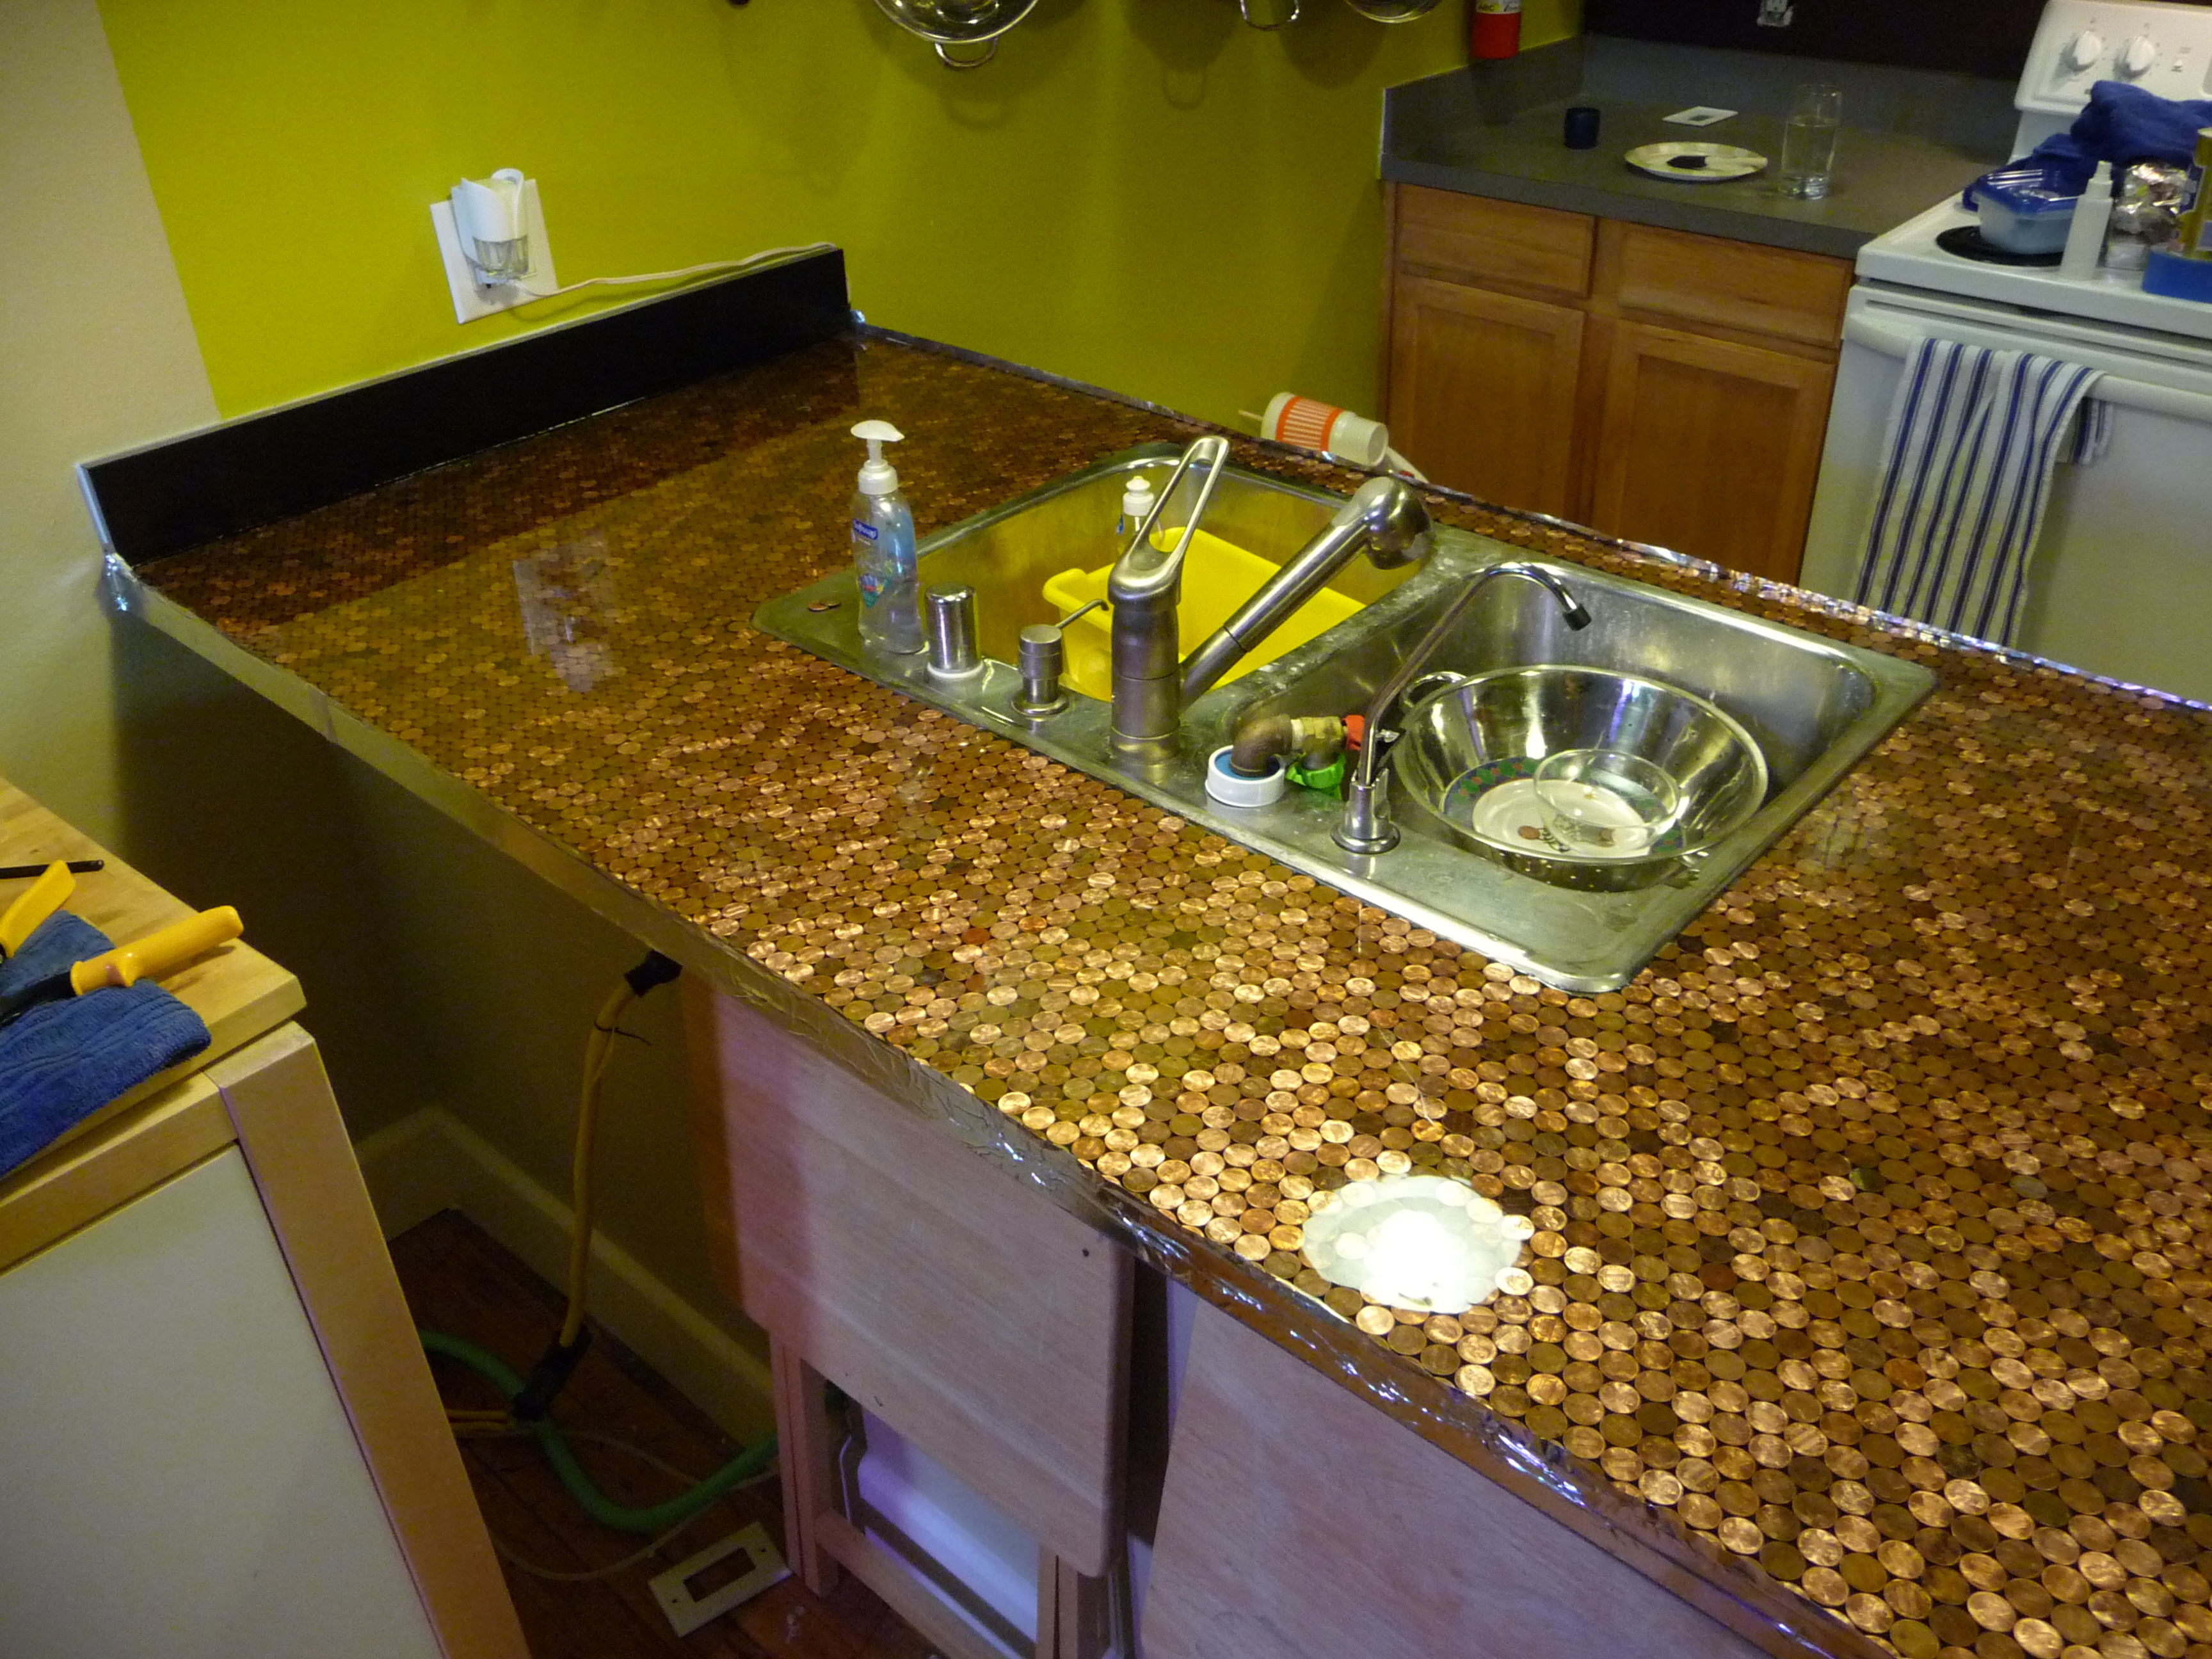 New Project: Install a Penny Countertop